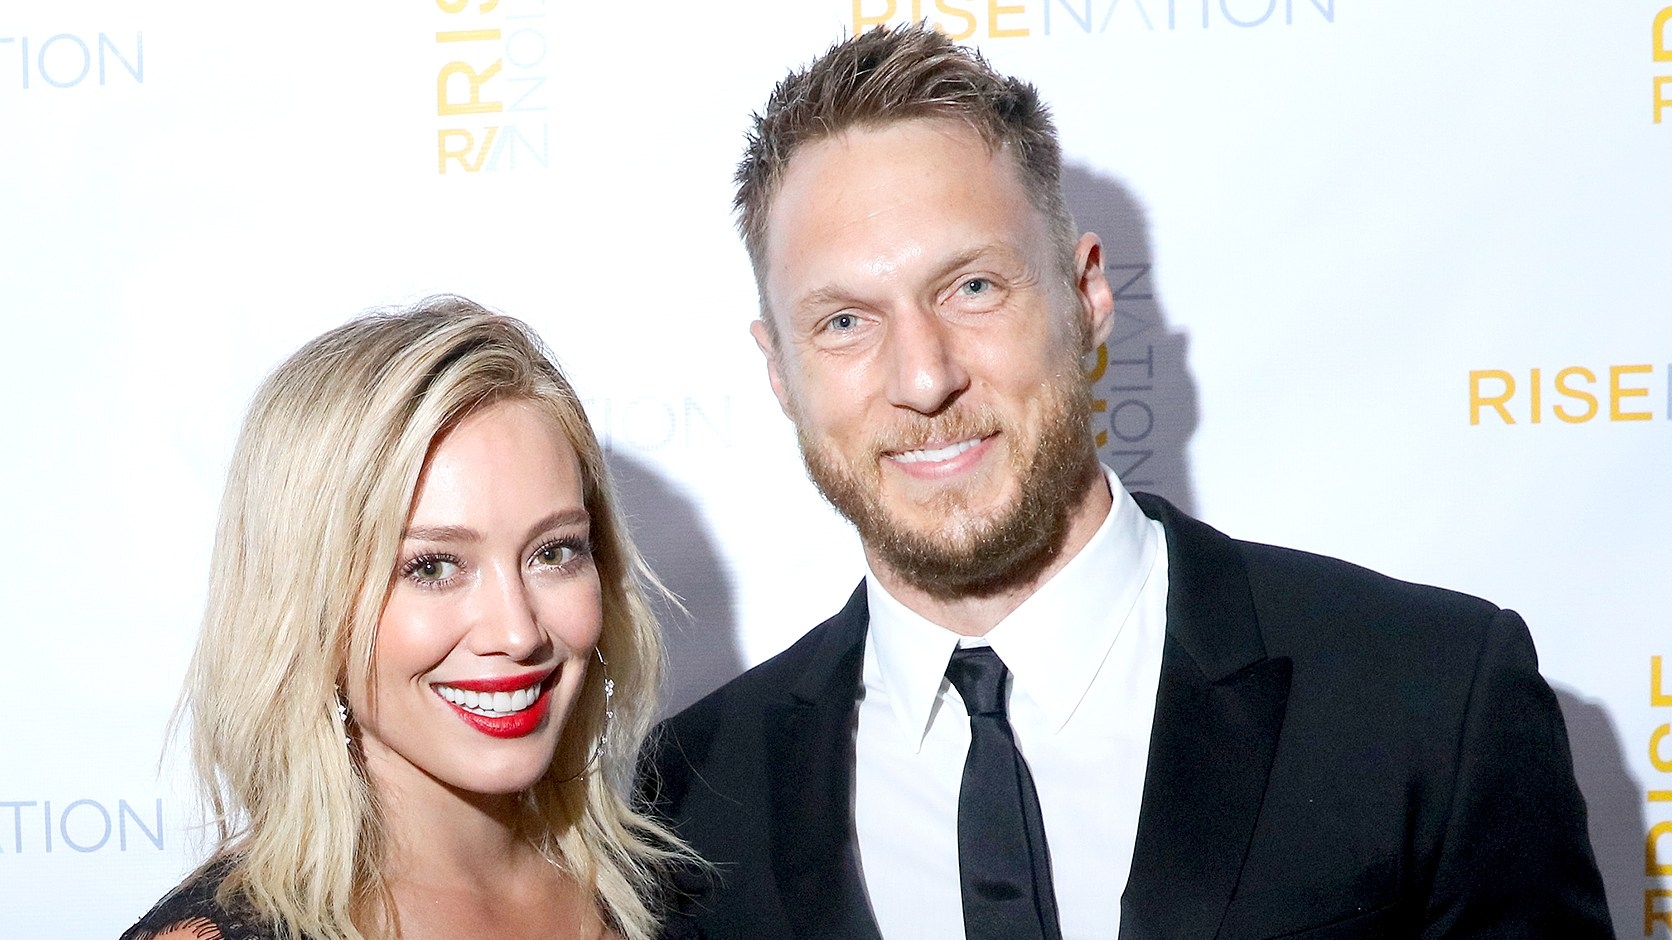 Hilary Duff and Jason Walsh attend 'Rise Nation Fitness Studio's Los Angeles Grand Opening' on August 21, 2015 in West Hollywood, California.